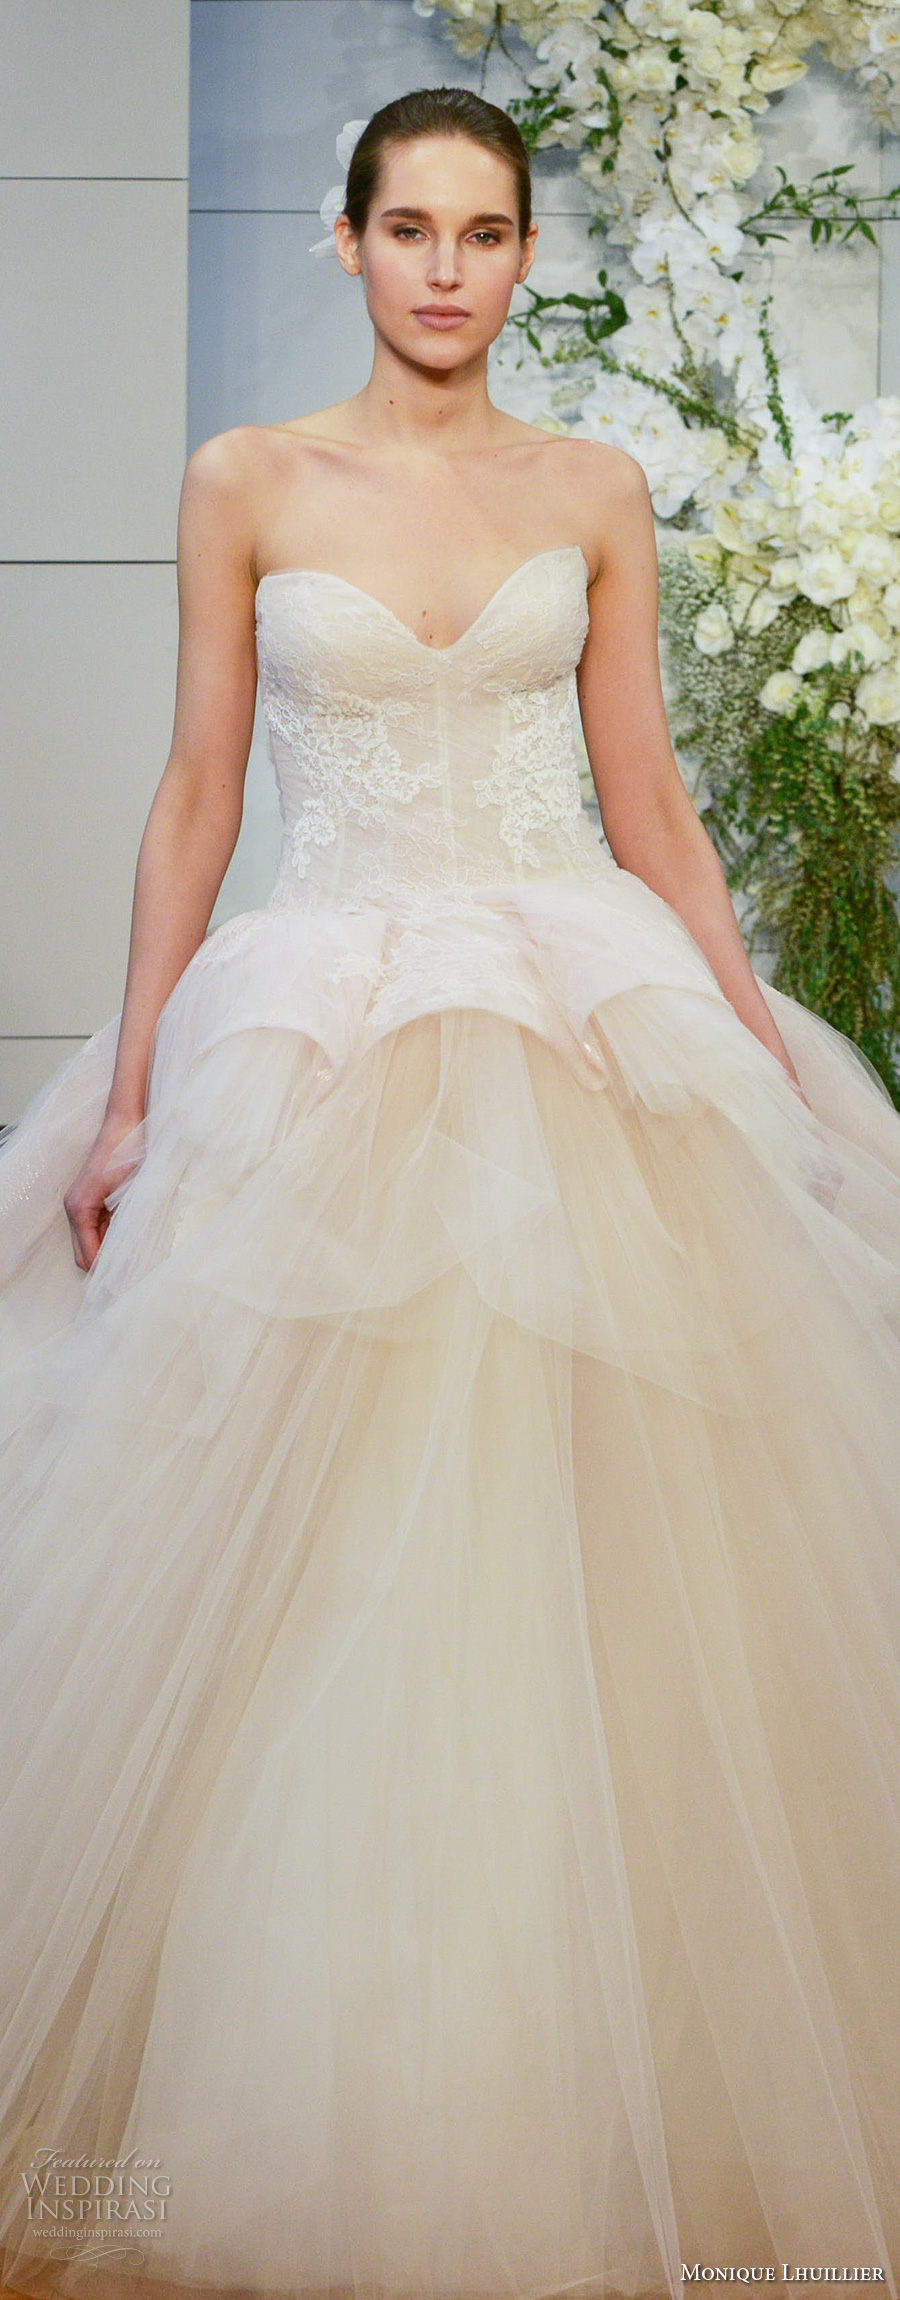 monique lhuillier spring 2018 bridal strapless sweetheart neckline lightly embellished bodice tulle skirt champagne color ball gown wedding dress chapel train (fleur) zv